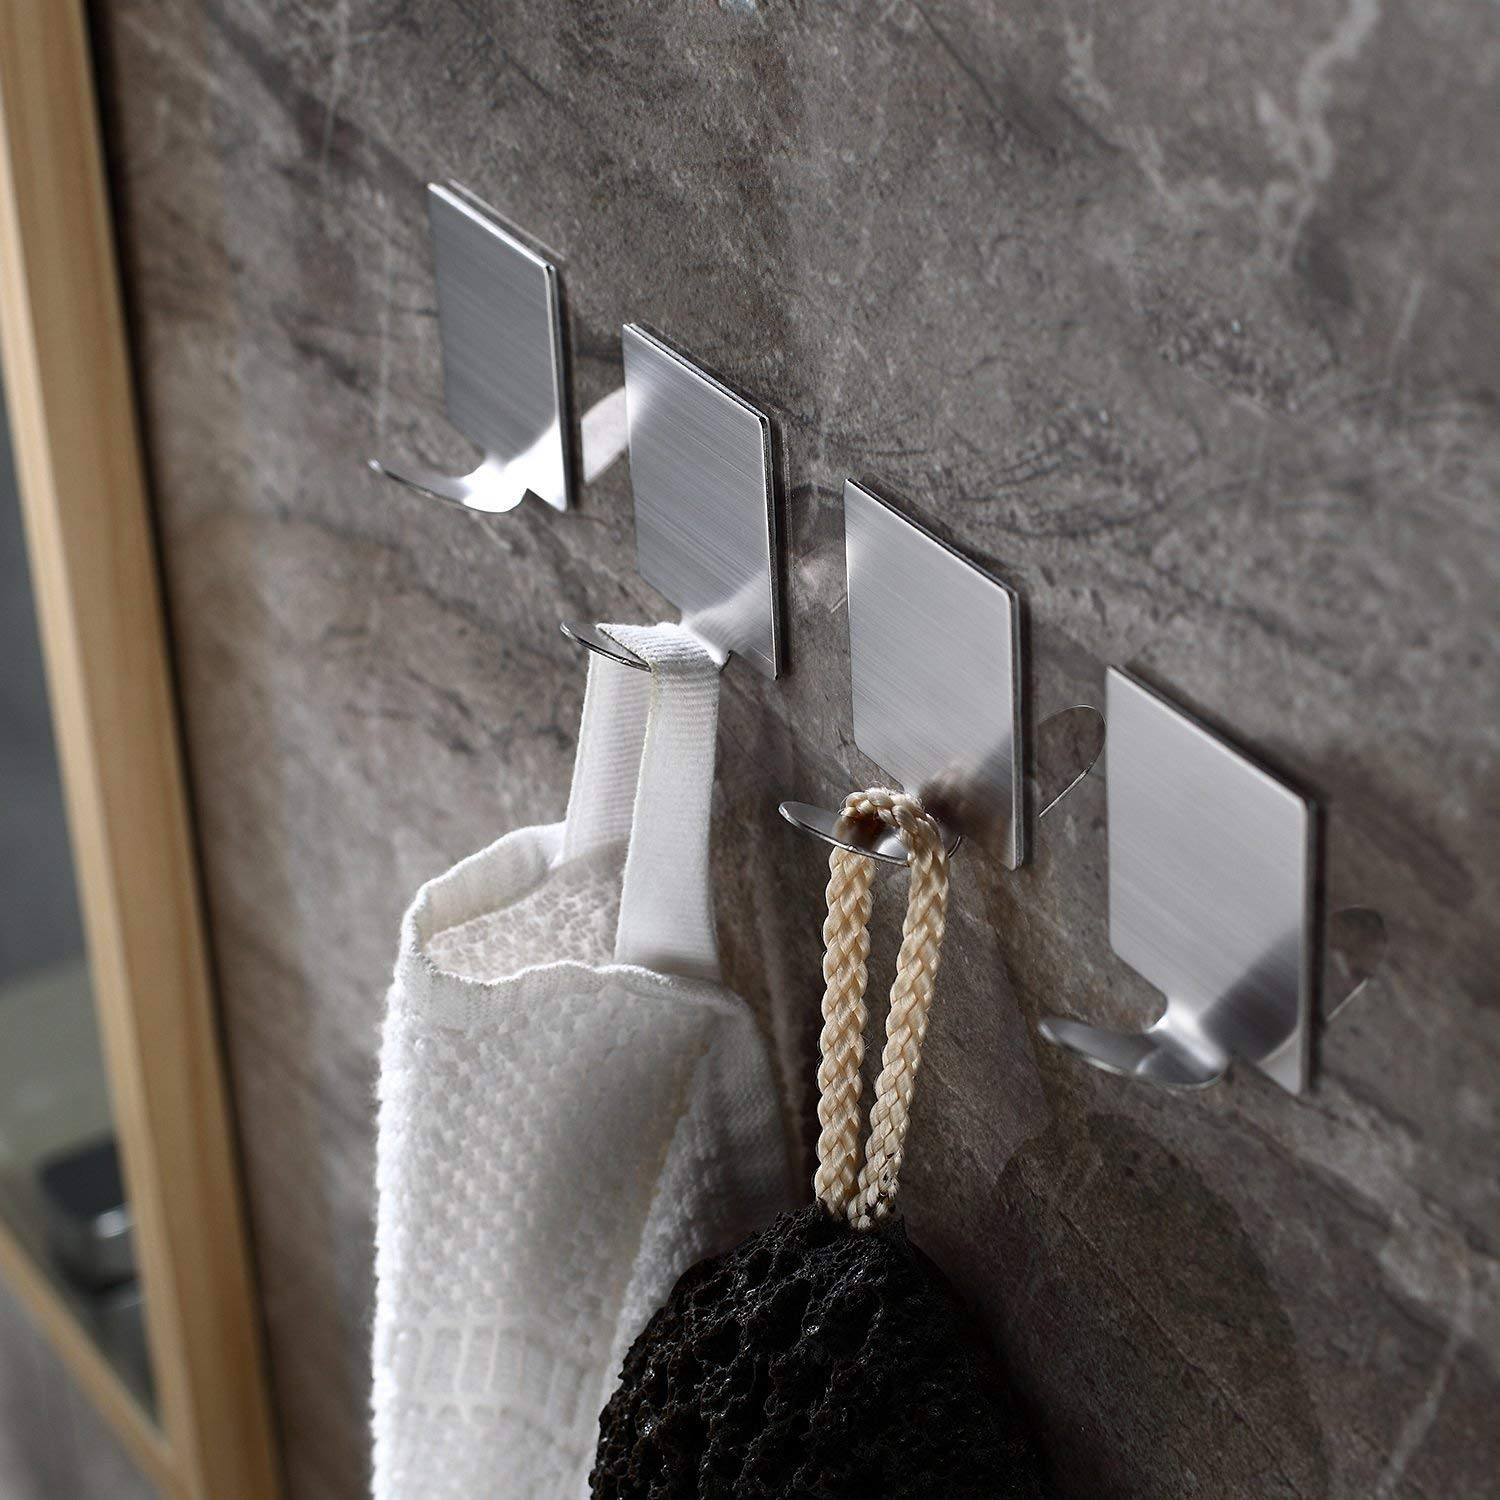 HTB1aNvaLXzqK1RjSZFvq6AB7VXa1 - 4pcs Brushed Stainless Steel Wall Hook Kitchen SelfAdhesive Hooks For Hanging Tools Suction Cup Coat Hanger Bathroom Accessories